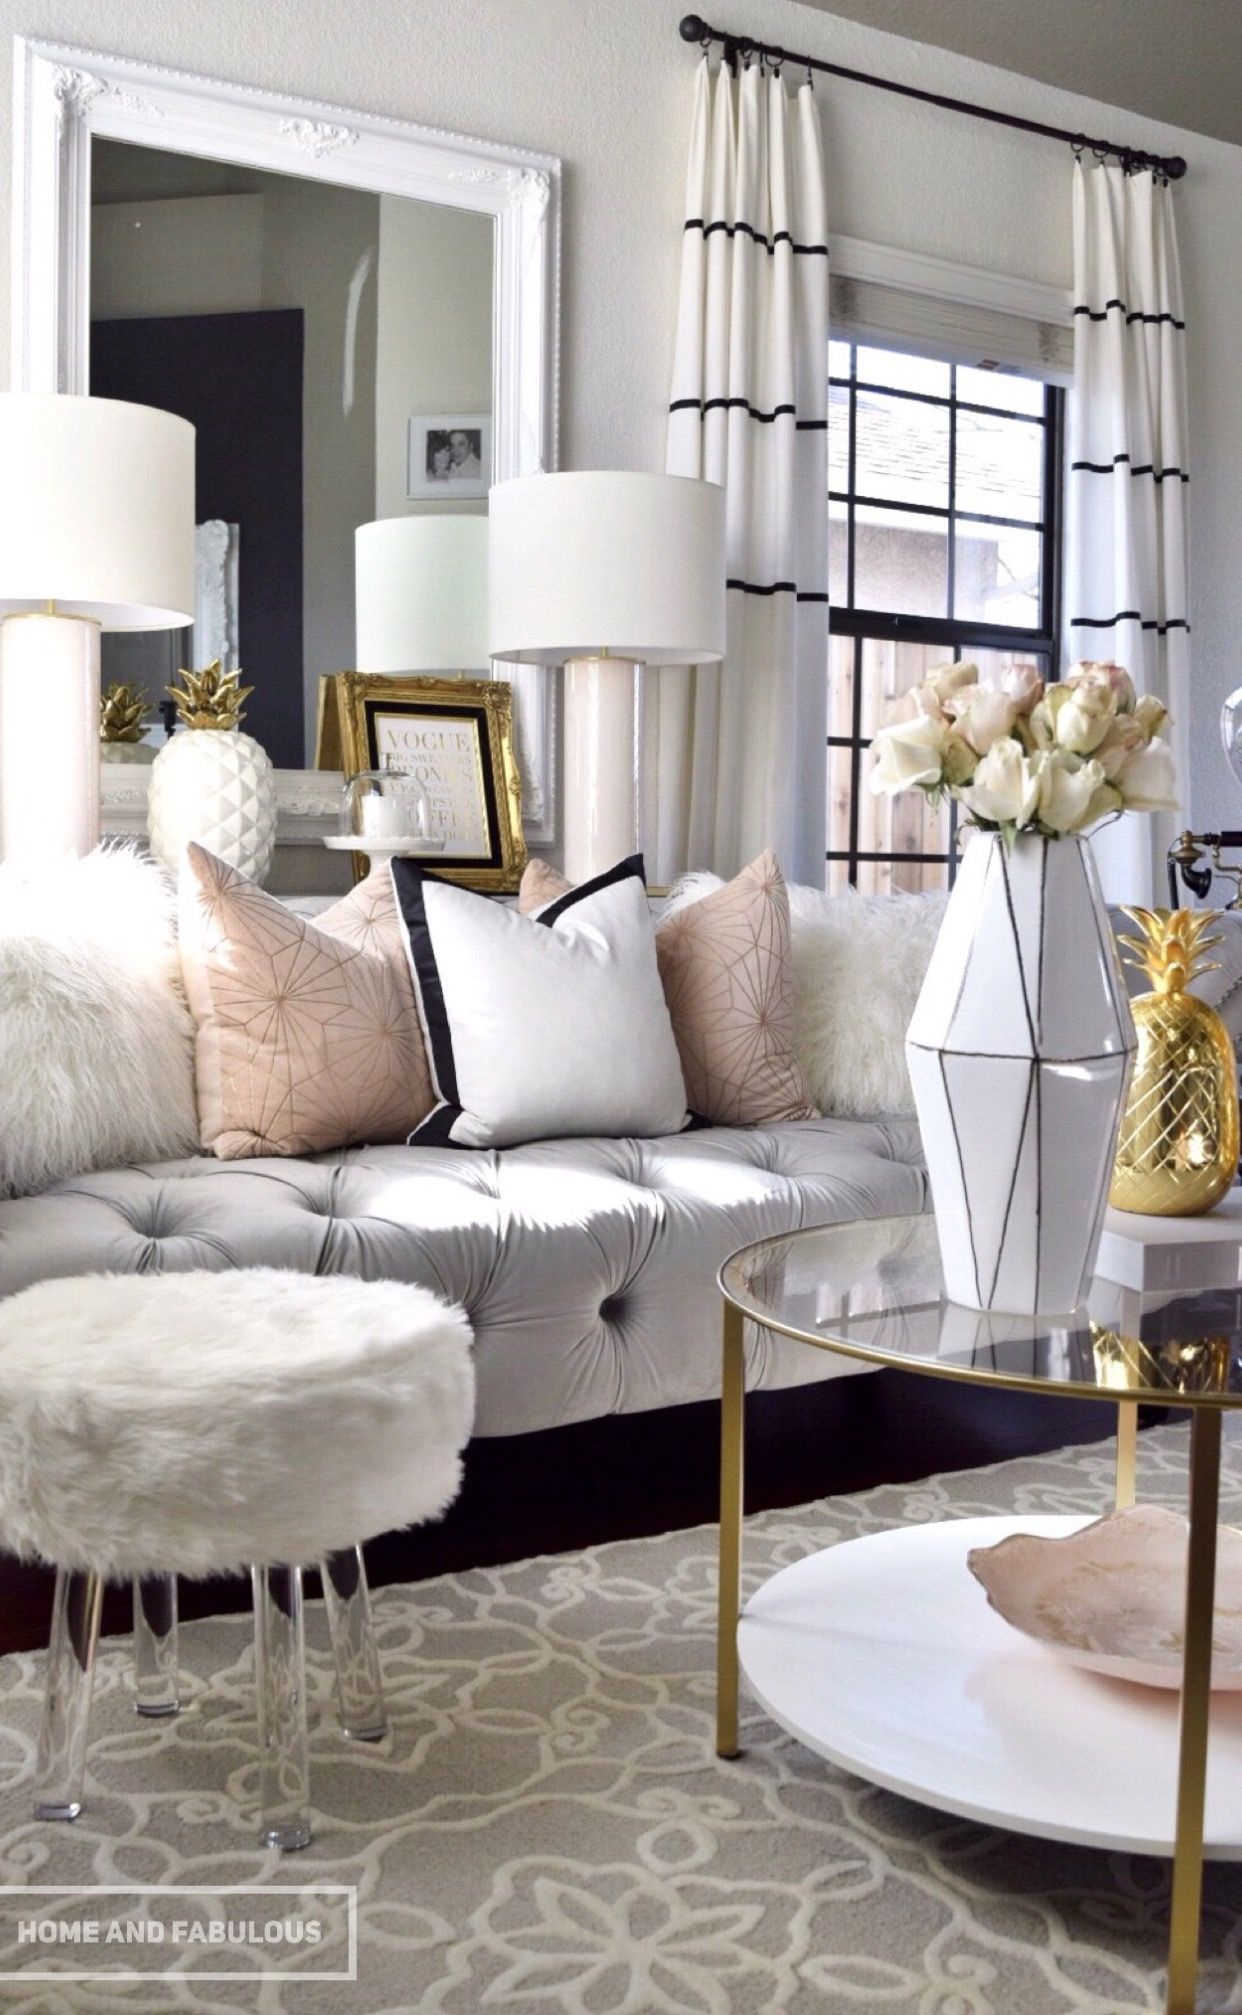 How One Couch Inspired A Living Room Transformation Home